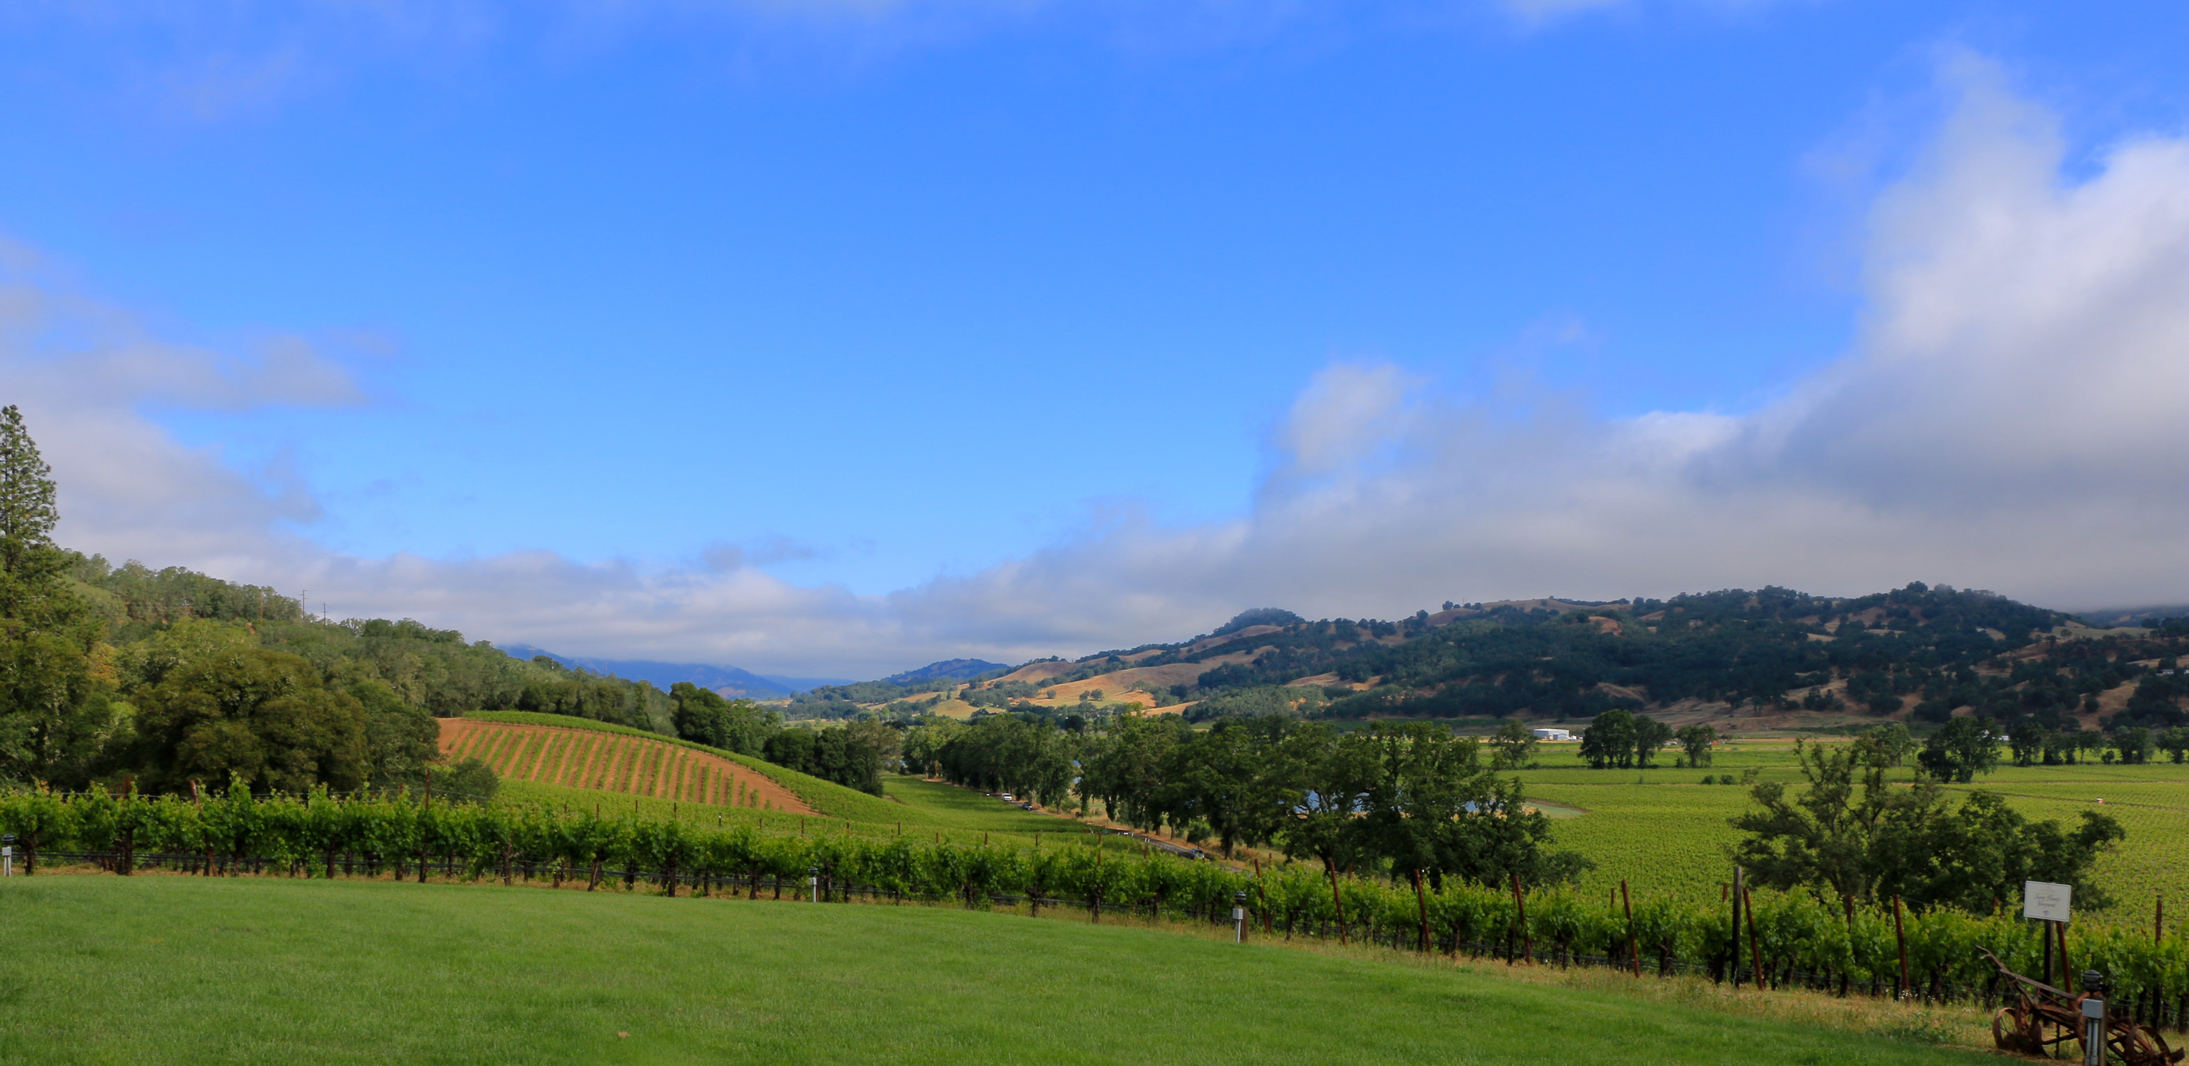 Contento_Vineyard_2_sm copy.jpg